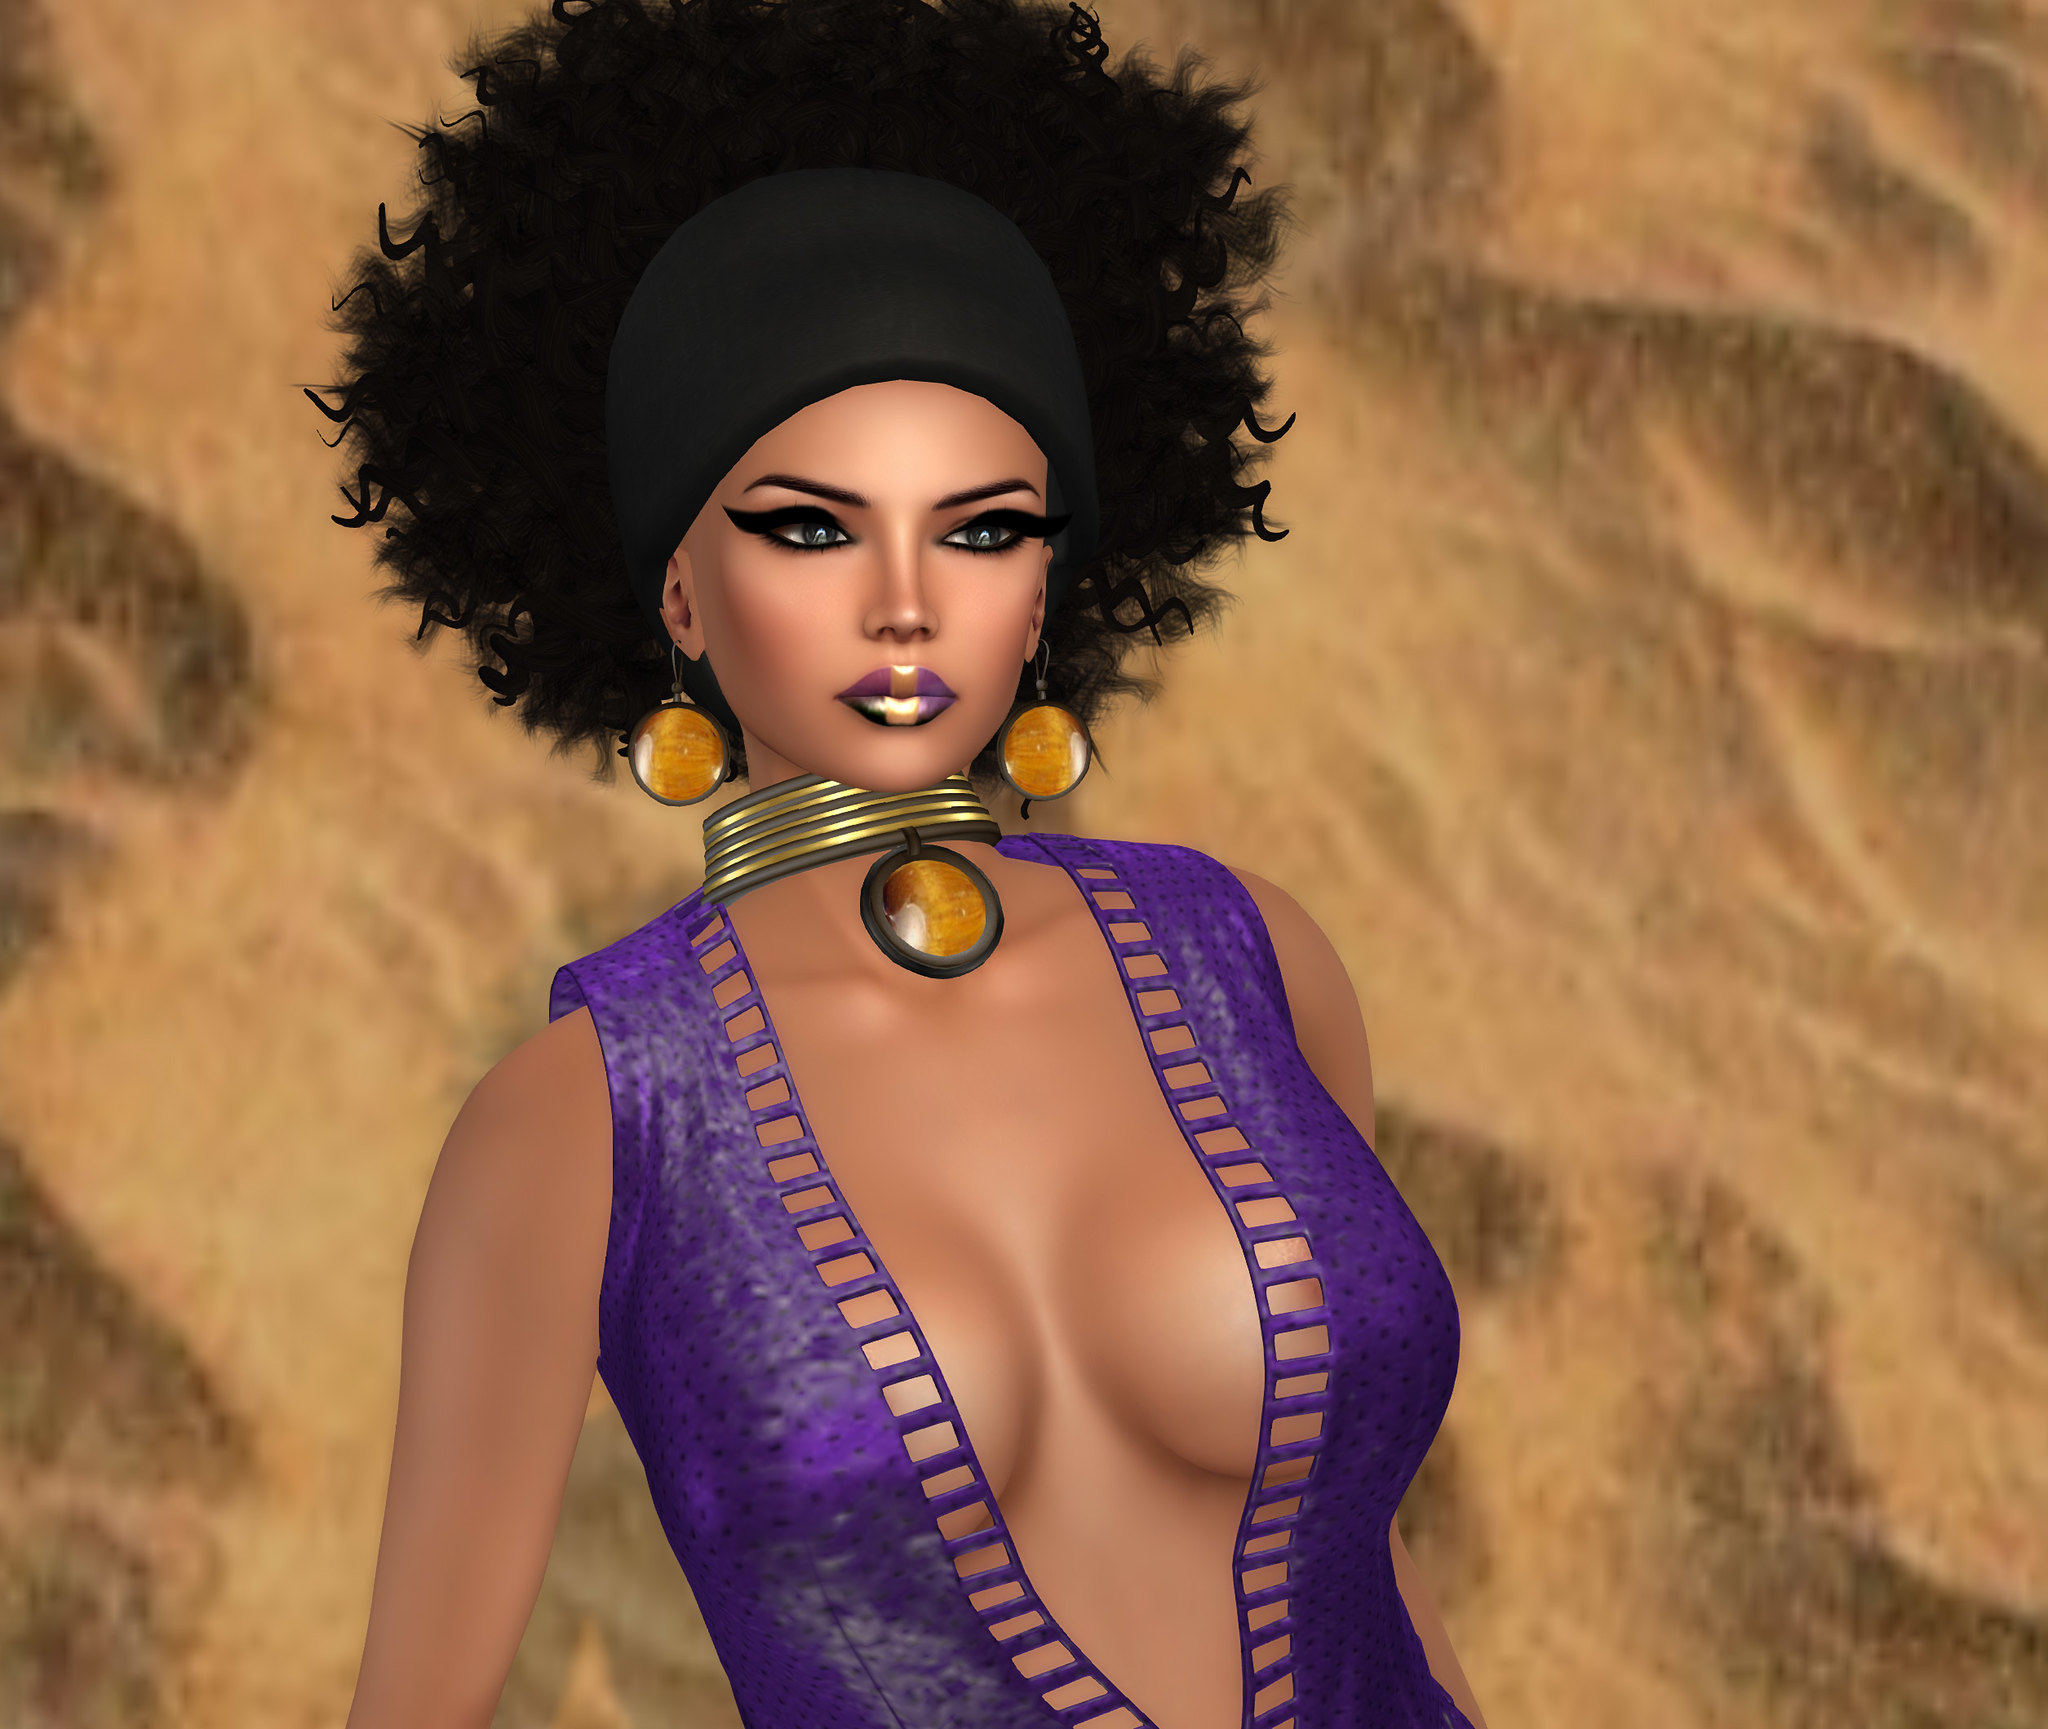 Prismatix make-up and Winehouse Mesh lashes, Oceanne @ Swank, Dress by Prism @ Swank